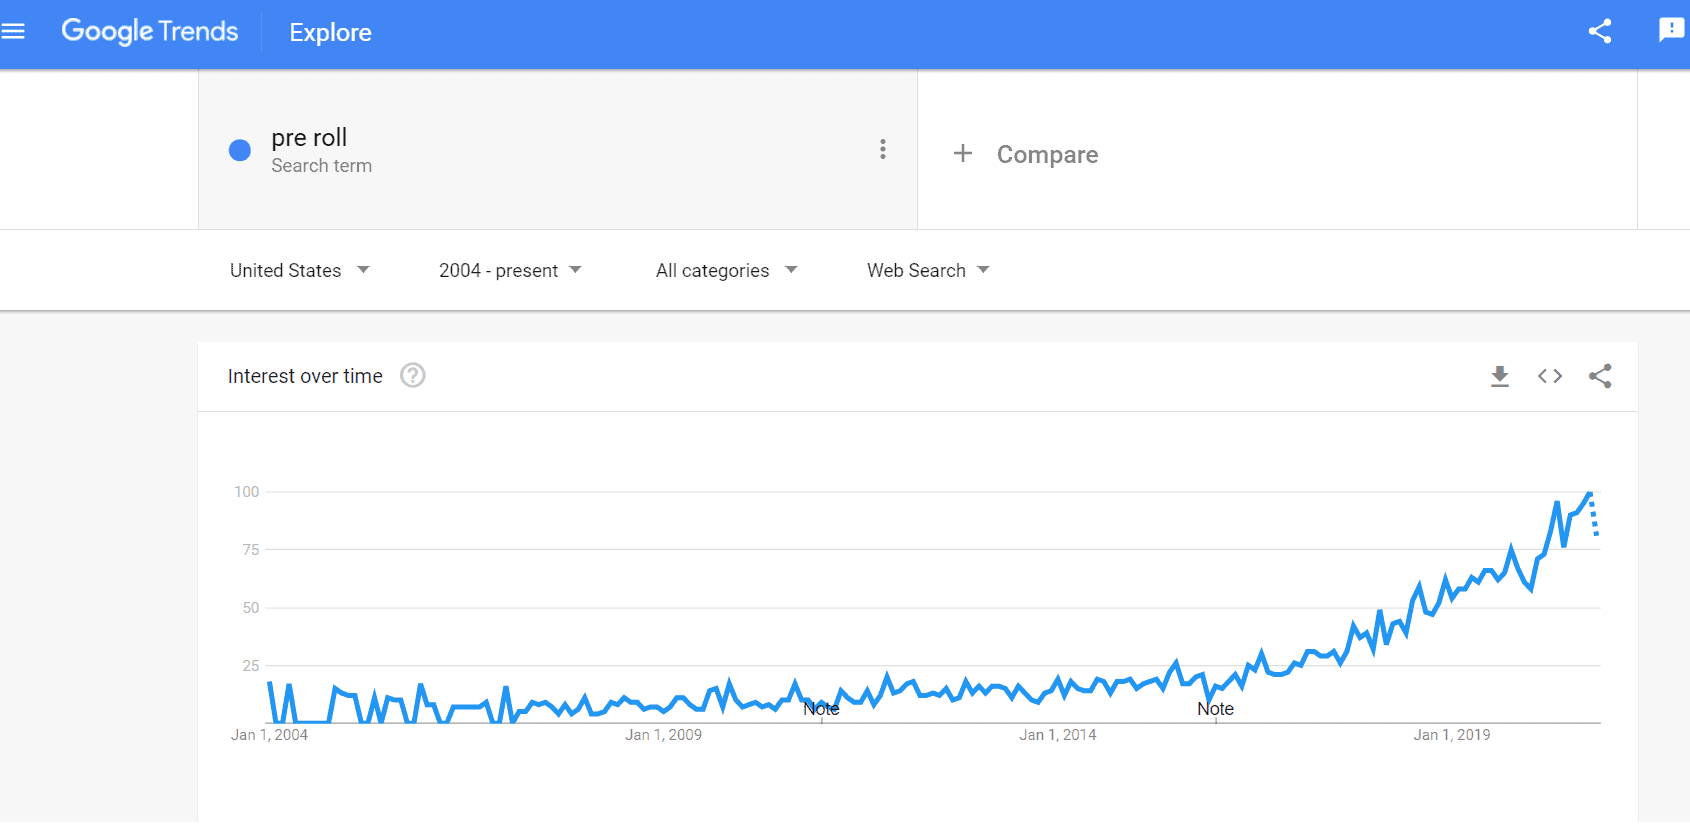 Google trend for Pre roll in last 5 years